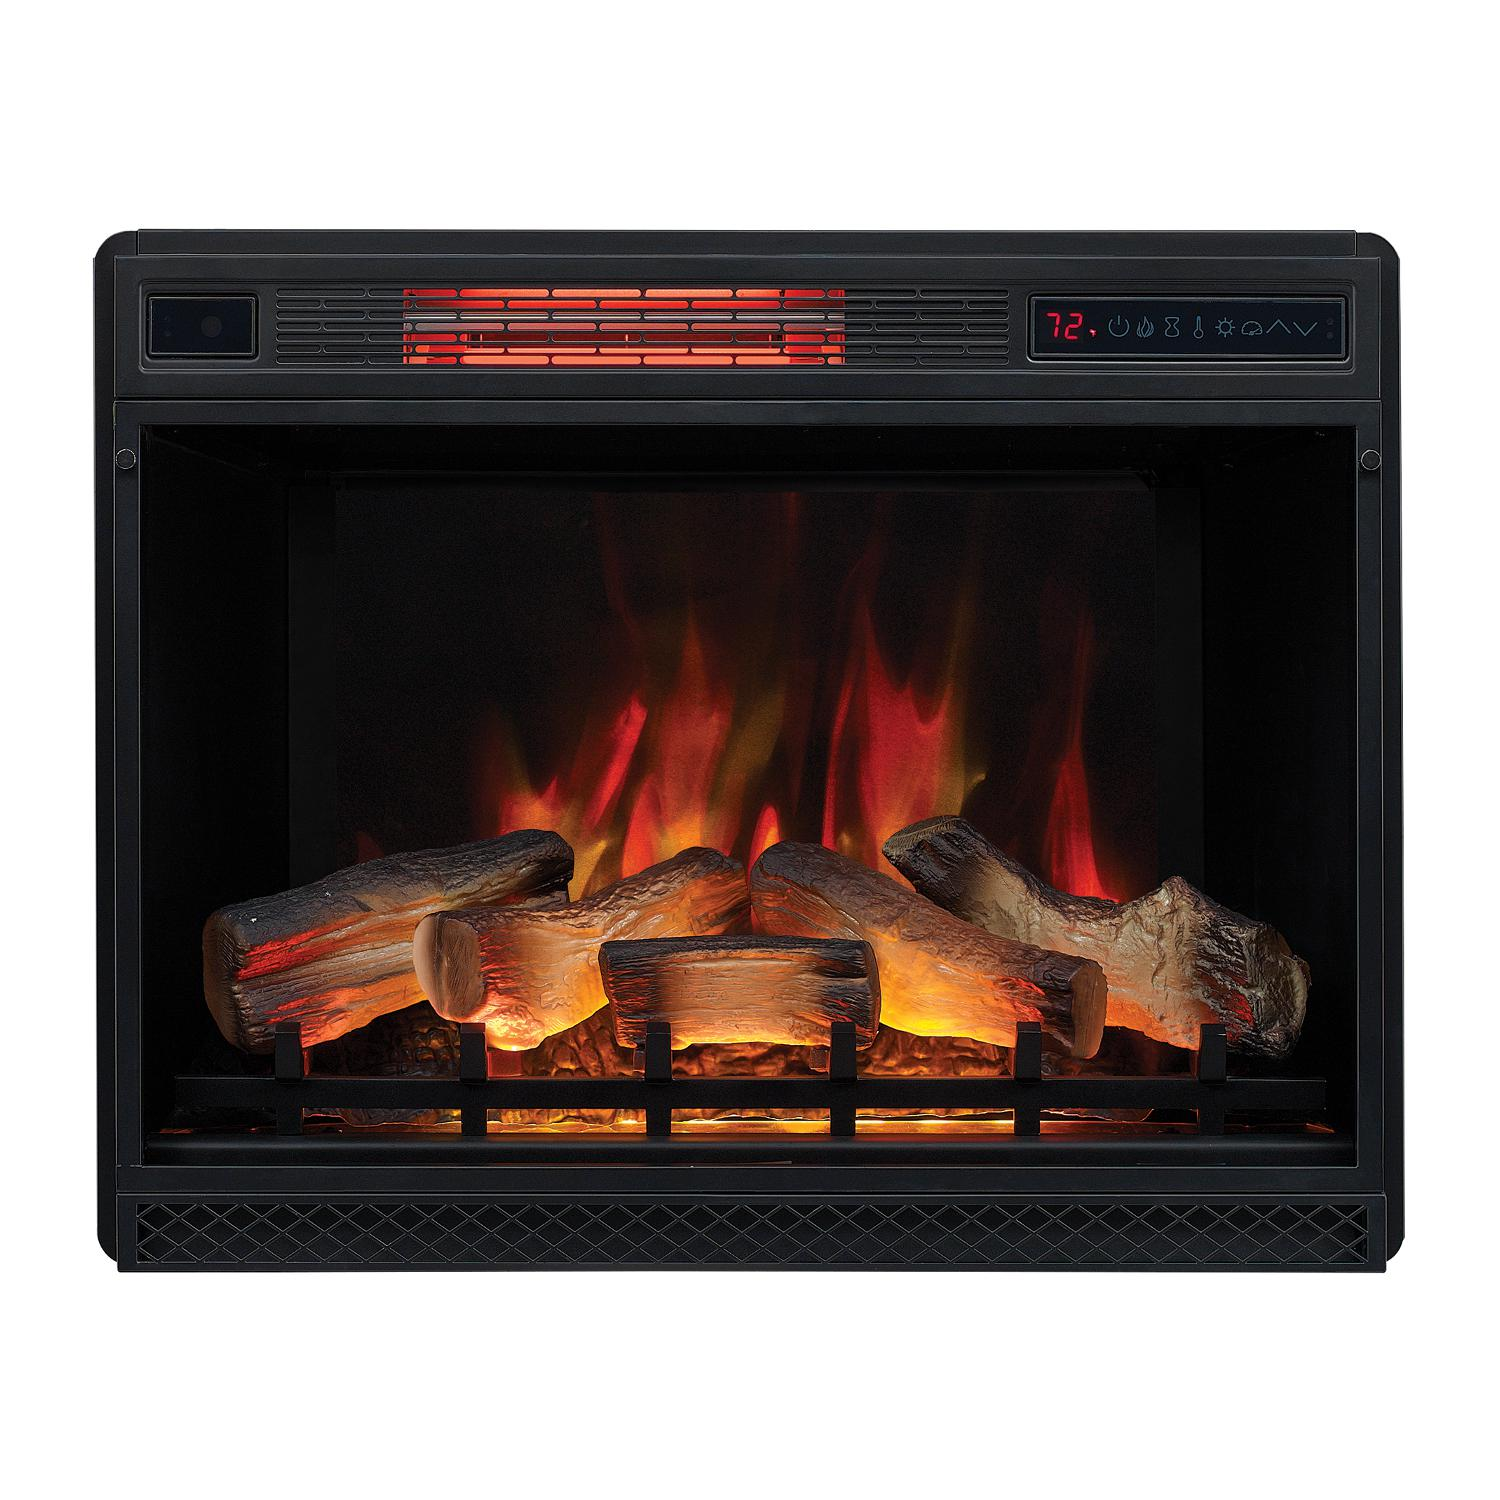 "Classicflame Spectrafire 28"" 3d Infrared Quartz Electric Fireplace Insert With Safer Plug And Safer Sensor - 28ii042fgl"